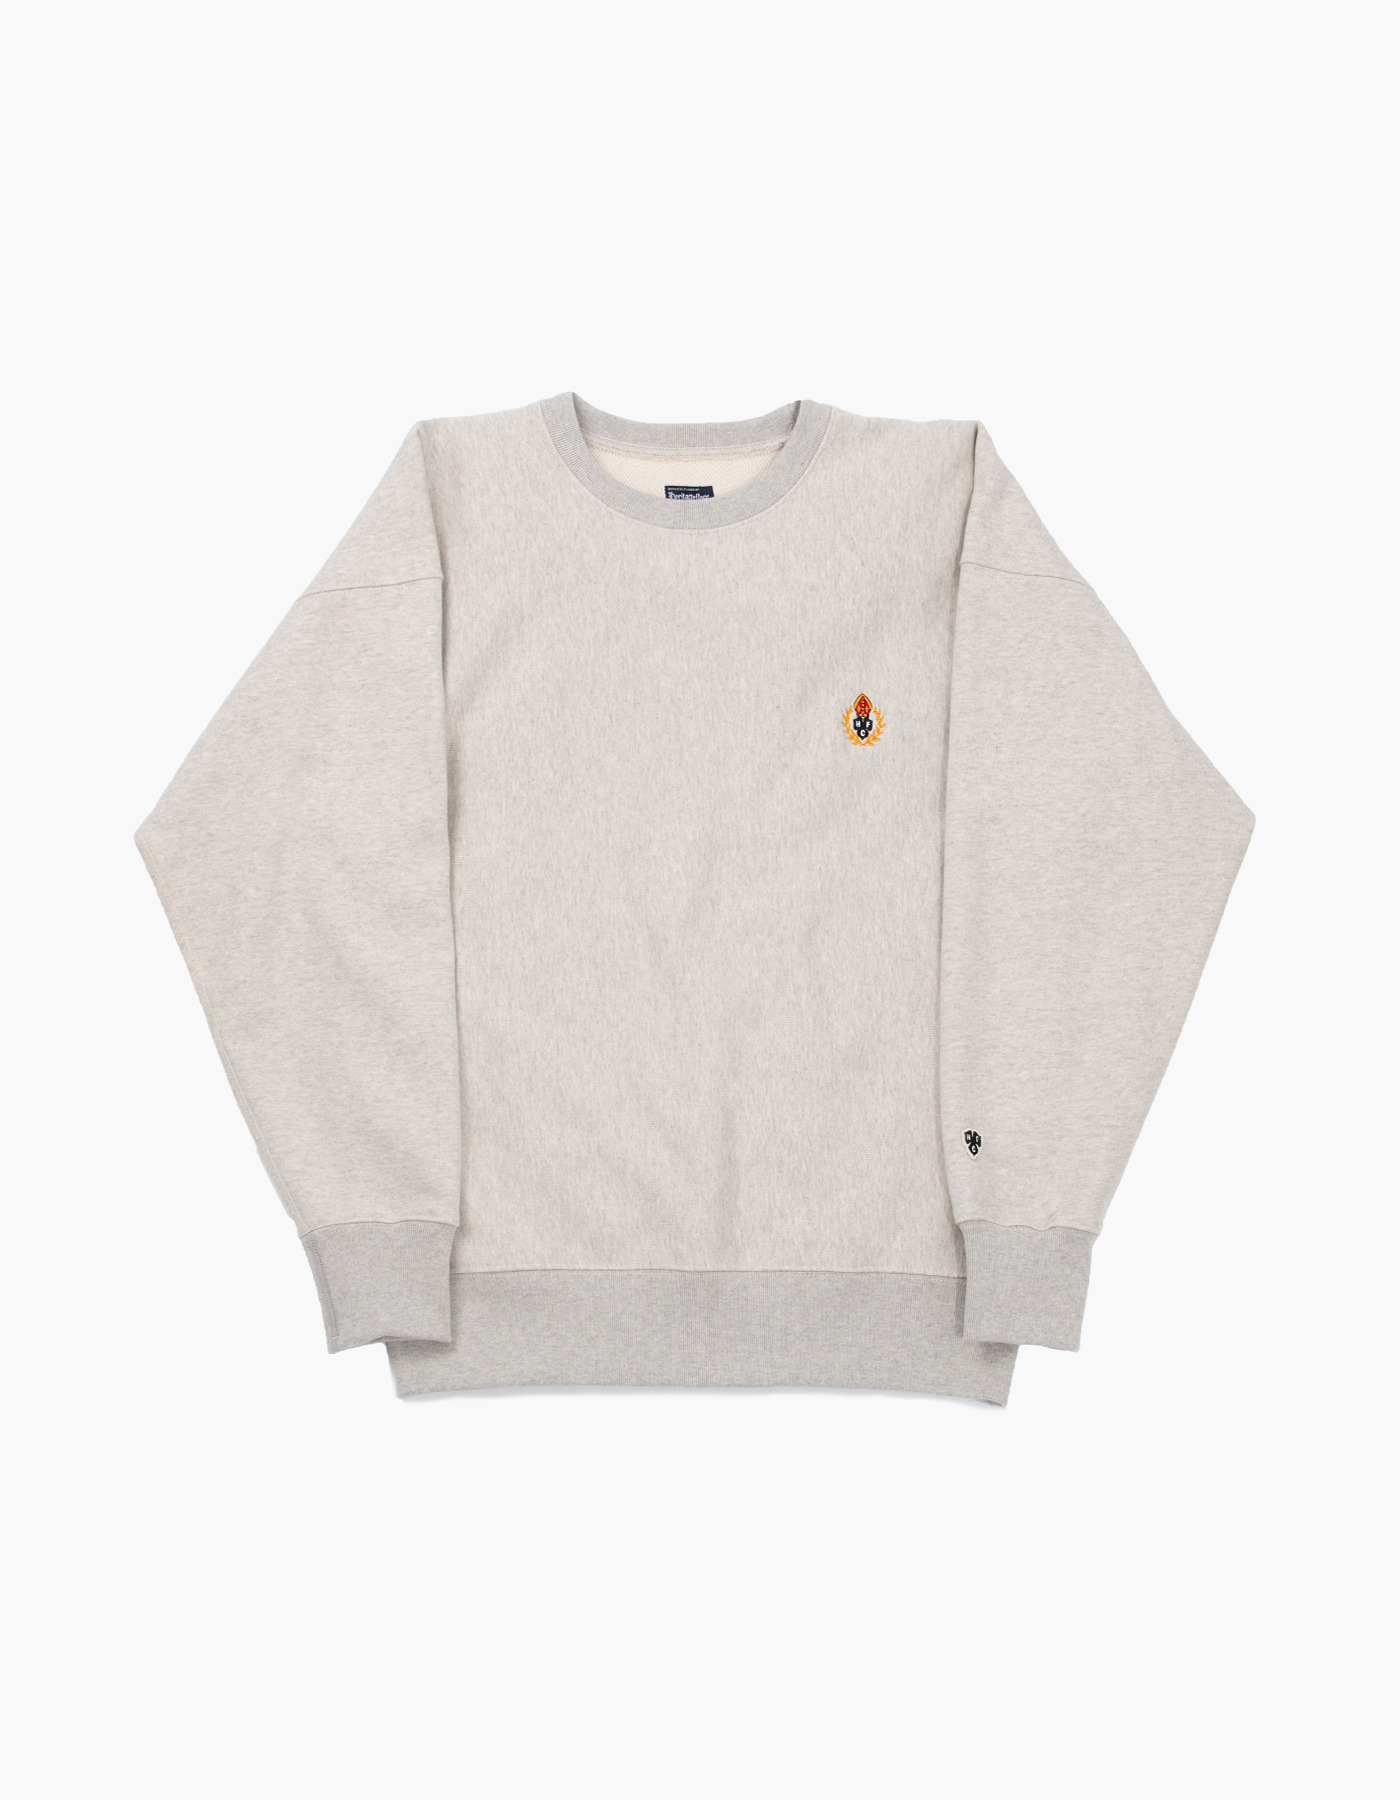 231 HFC CREWNECK / M.GREY (1%)